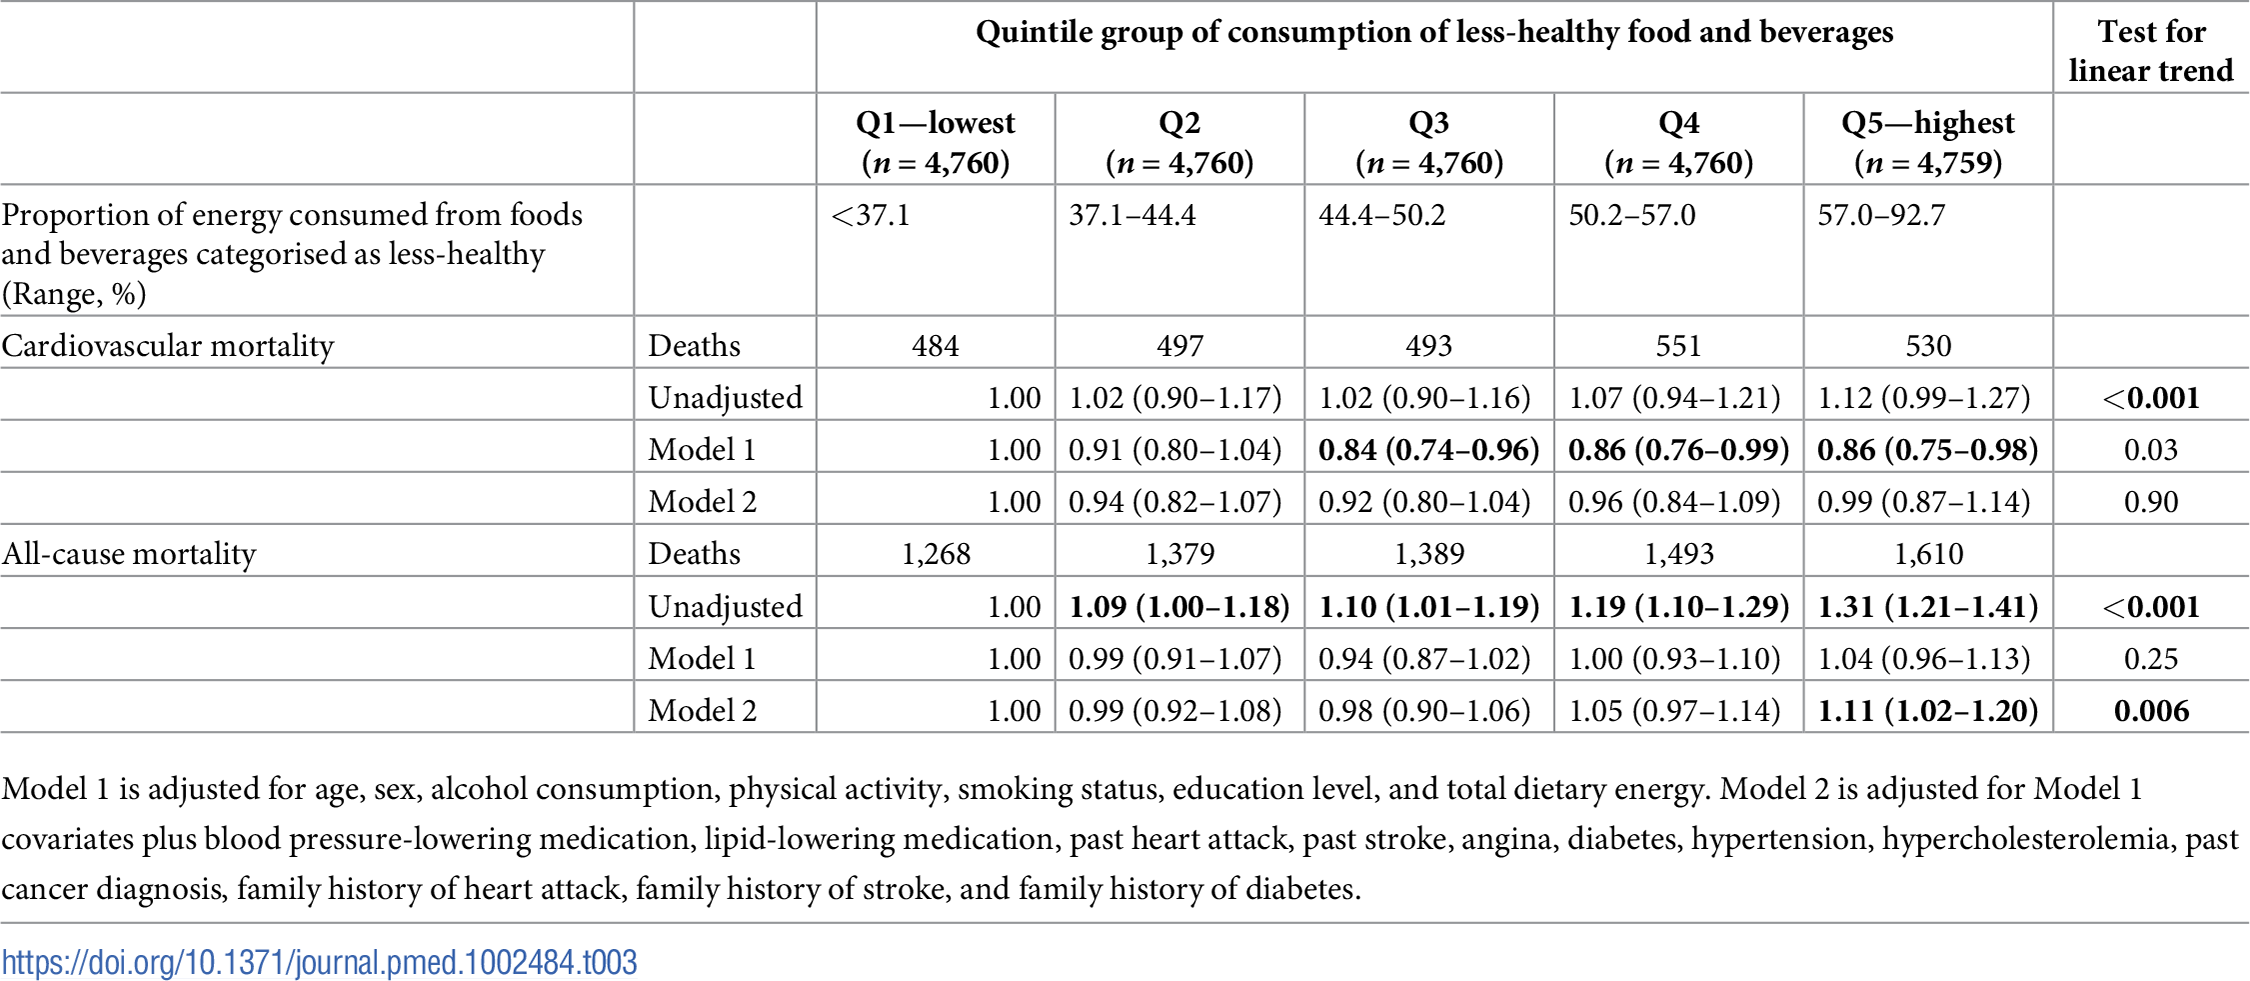 Hazard ratios for cardiovascular and all-cause mortality by quintile group of proportional less-healthy food consumption in the European Prospective Investigation of Cancer (EPIC)-Norfolk (<i>n</i> = 24,880).